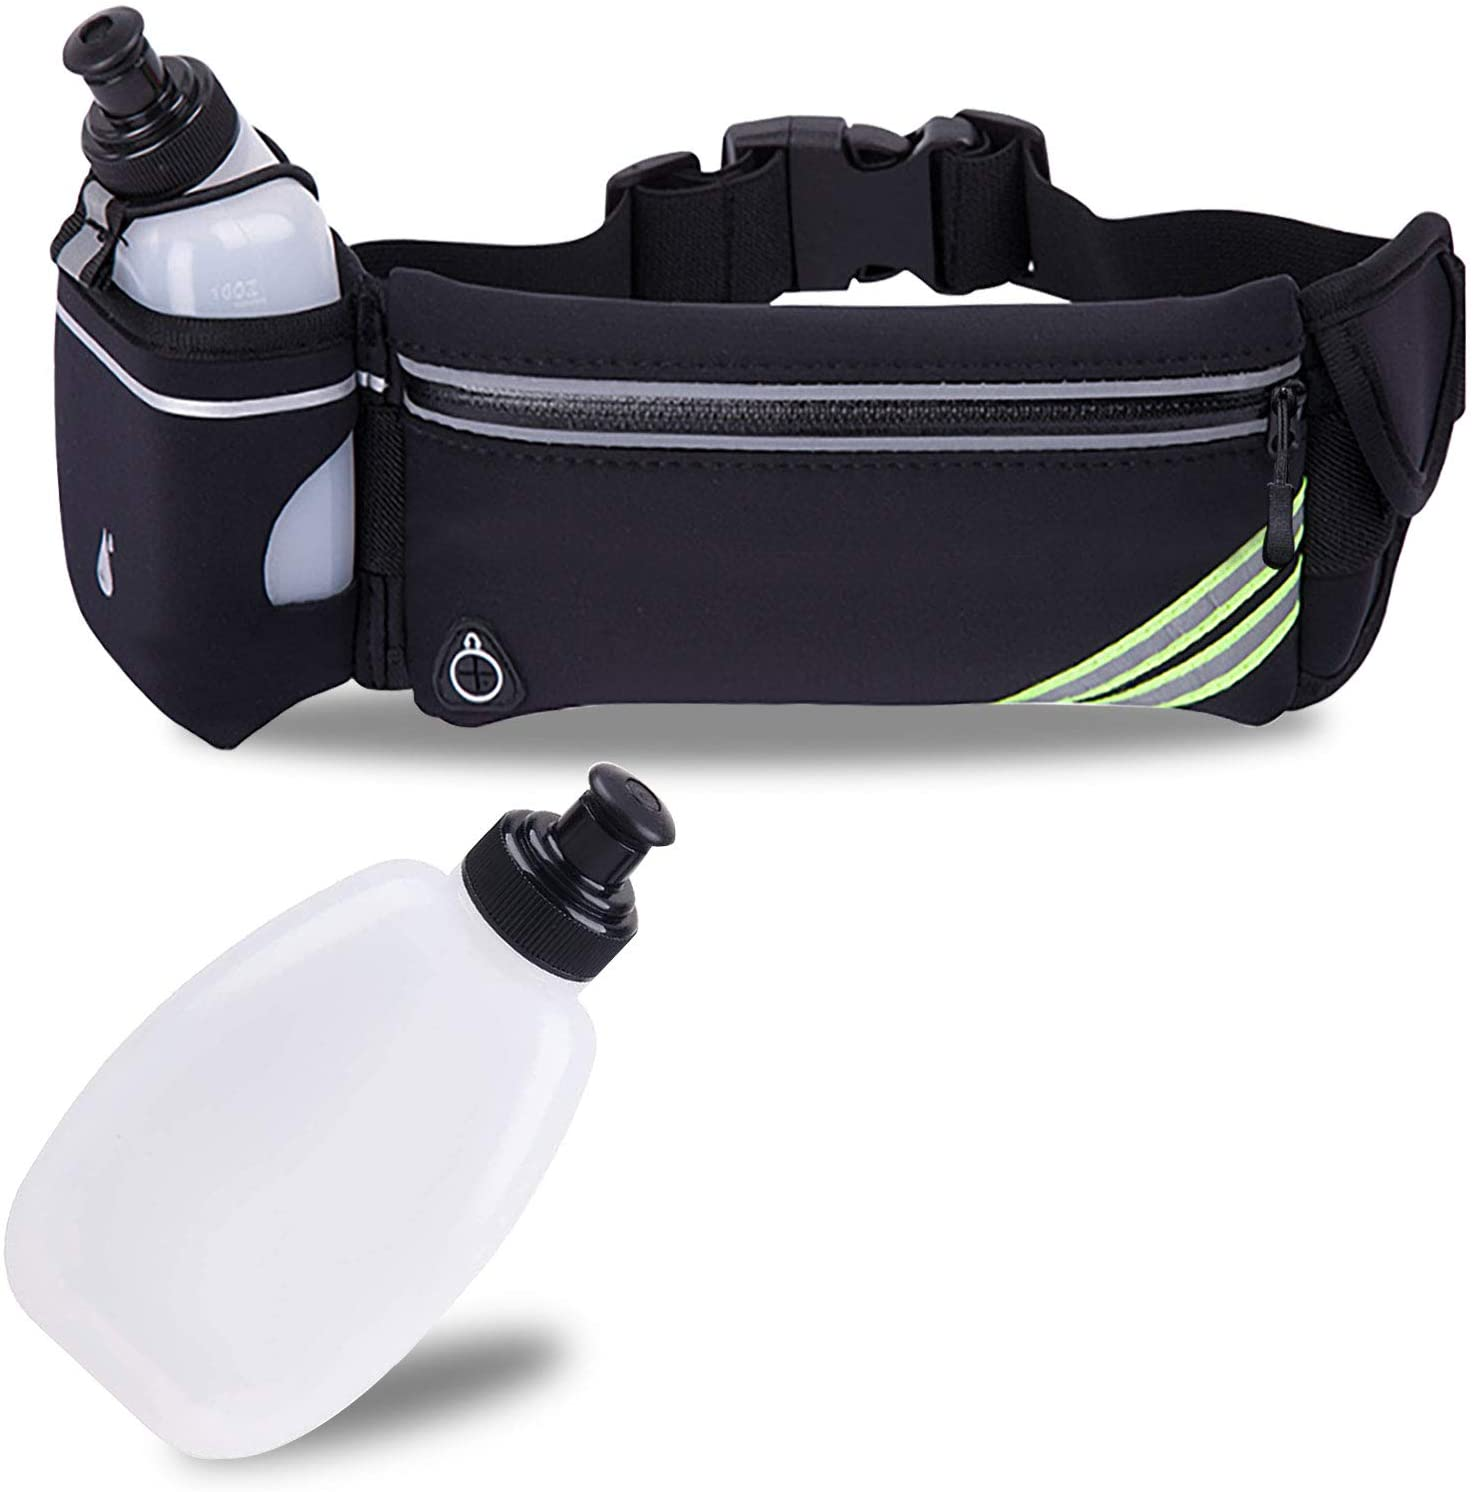 and Huawei Water Bottle Waist Pack with 10 Oz Run Flask and Grey Hair Band Samsung Hydration Belt Fanny Bag with Touch Screen Pocket for iPhone and Walking Hiking Suitable for Jogging